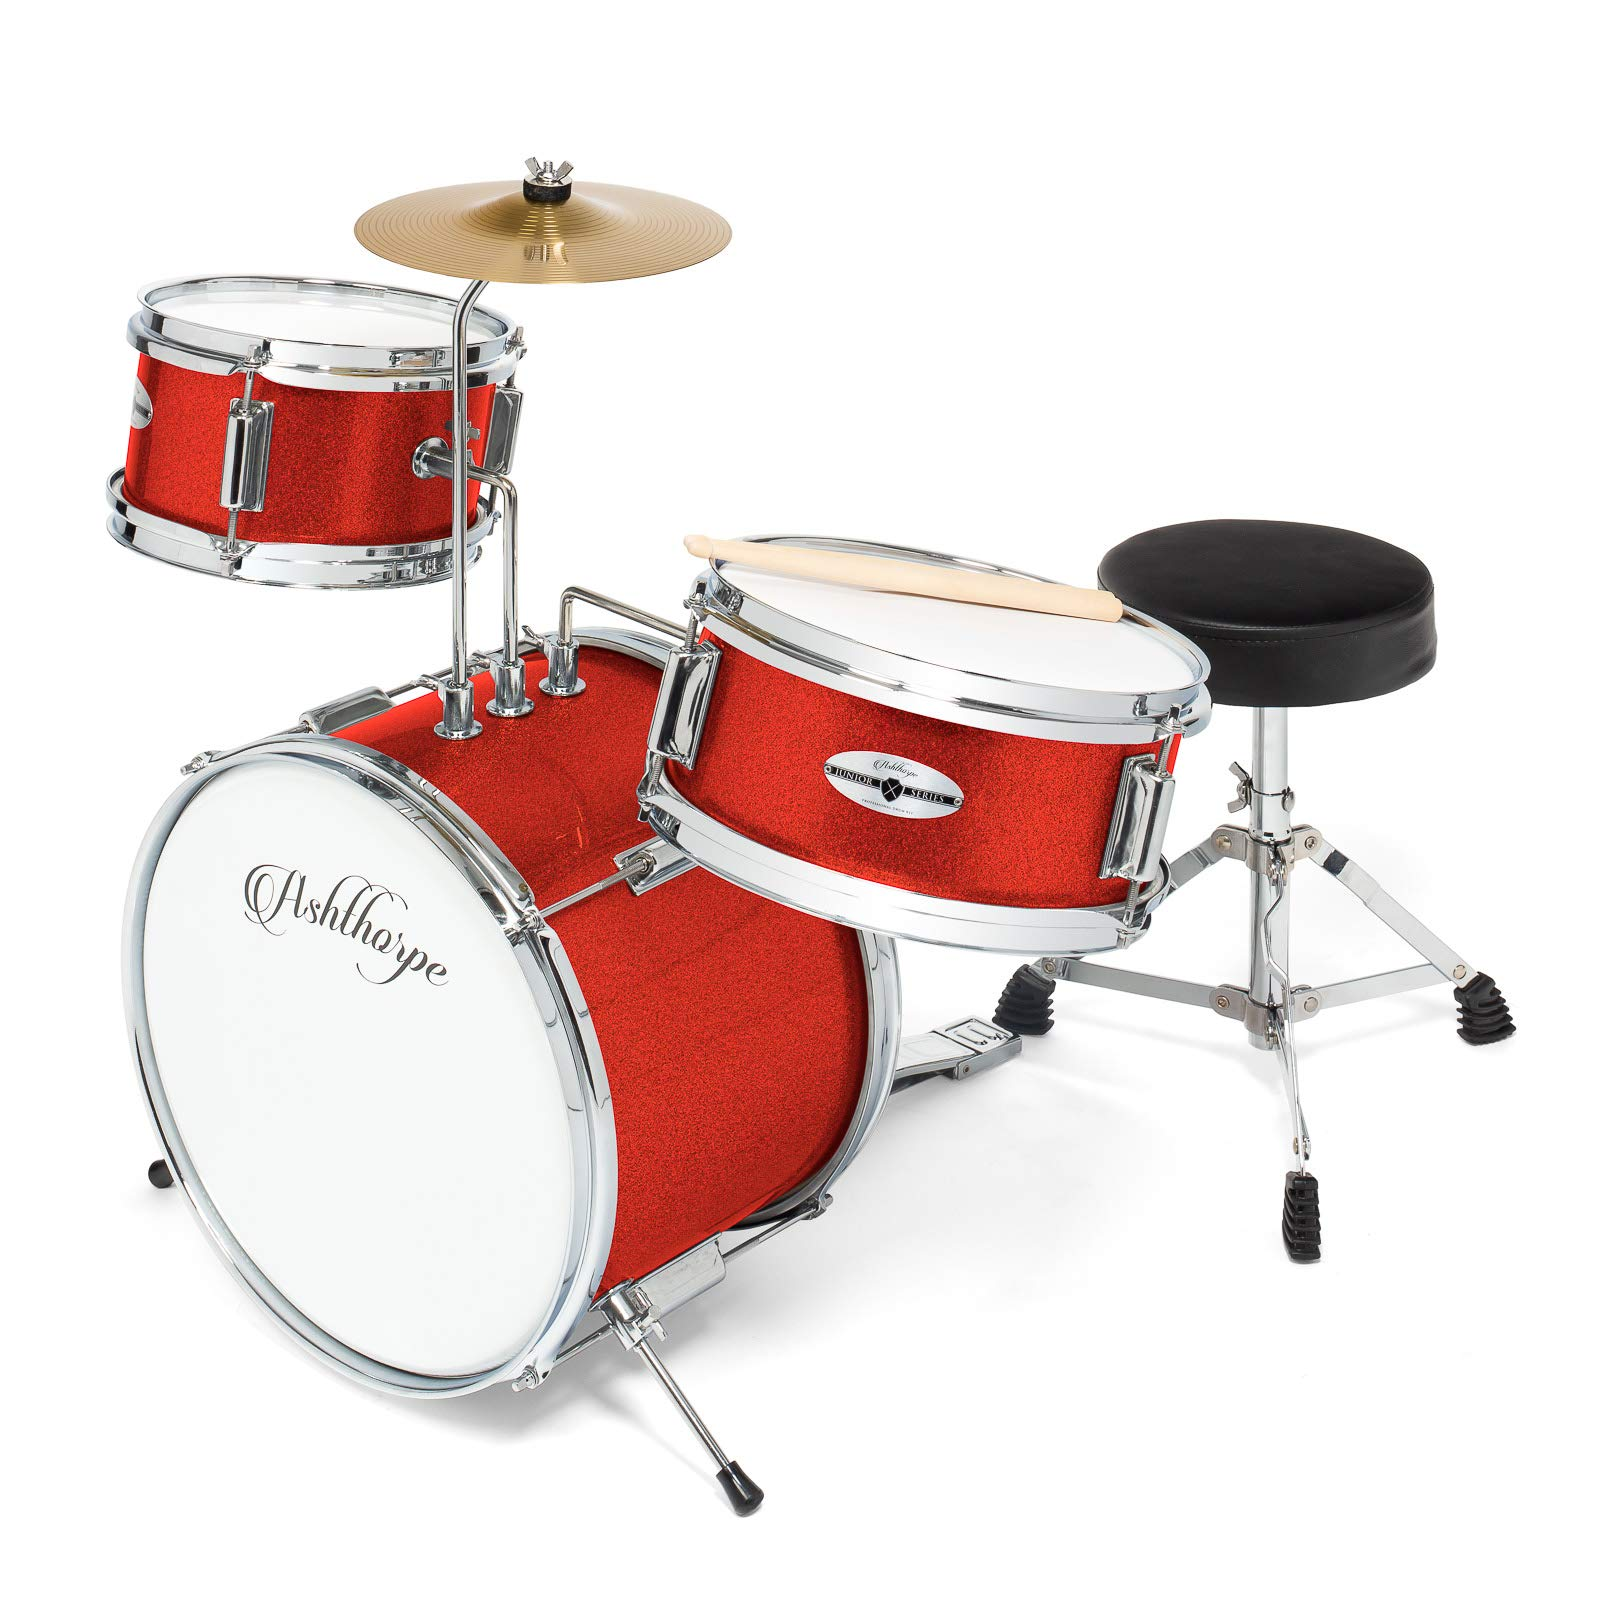 Ashthorpe 3-Piece Complete Kid's Junior Drum Set - Children's Beginner Kit with 14'' Bass, Adjustable Throne, Cymbal, Pedal & Drumsticks - Red